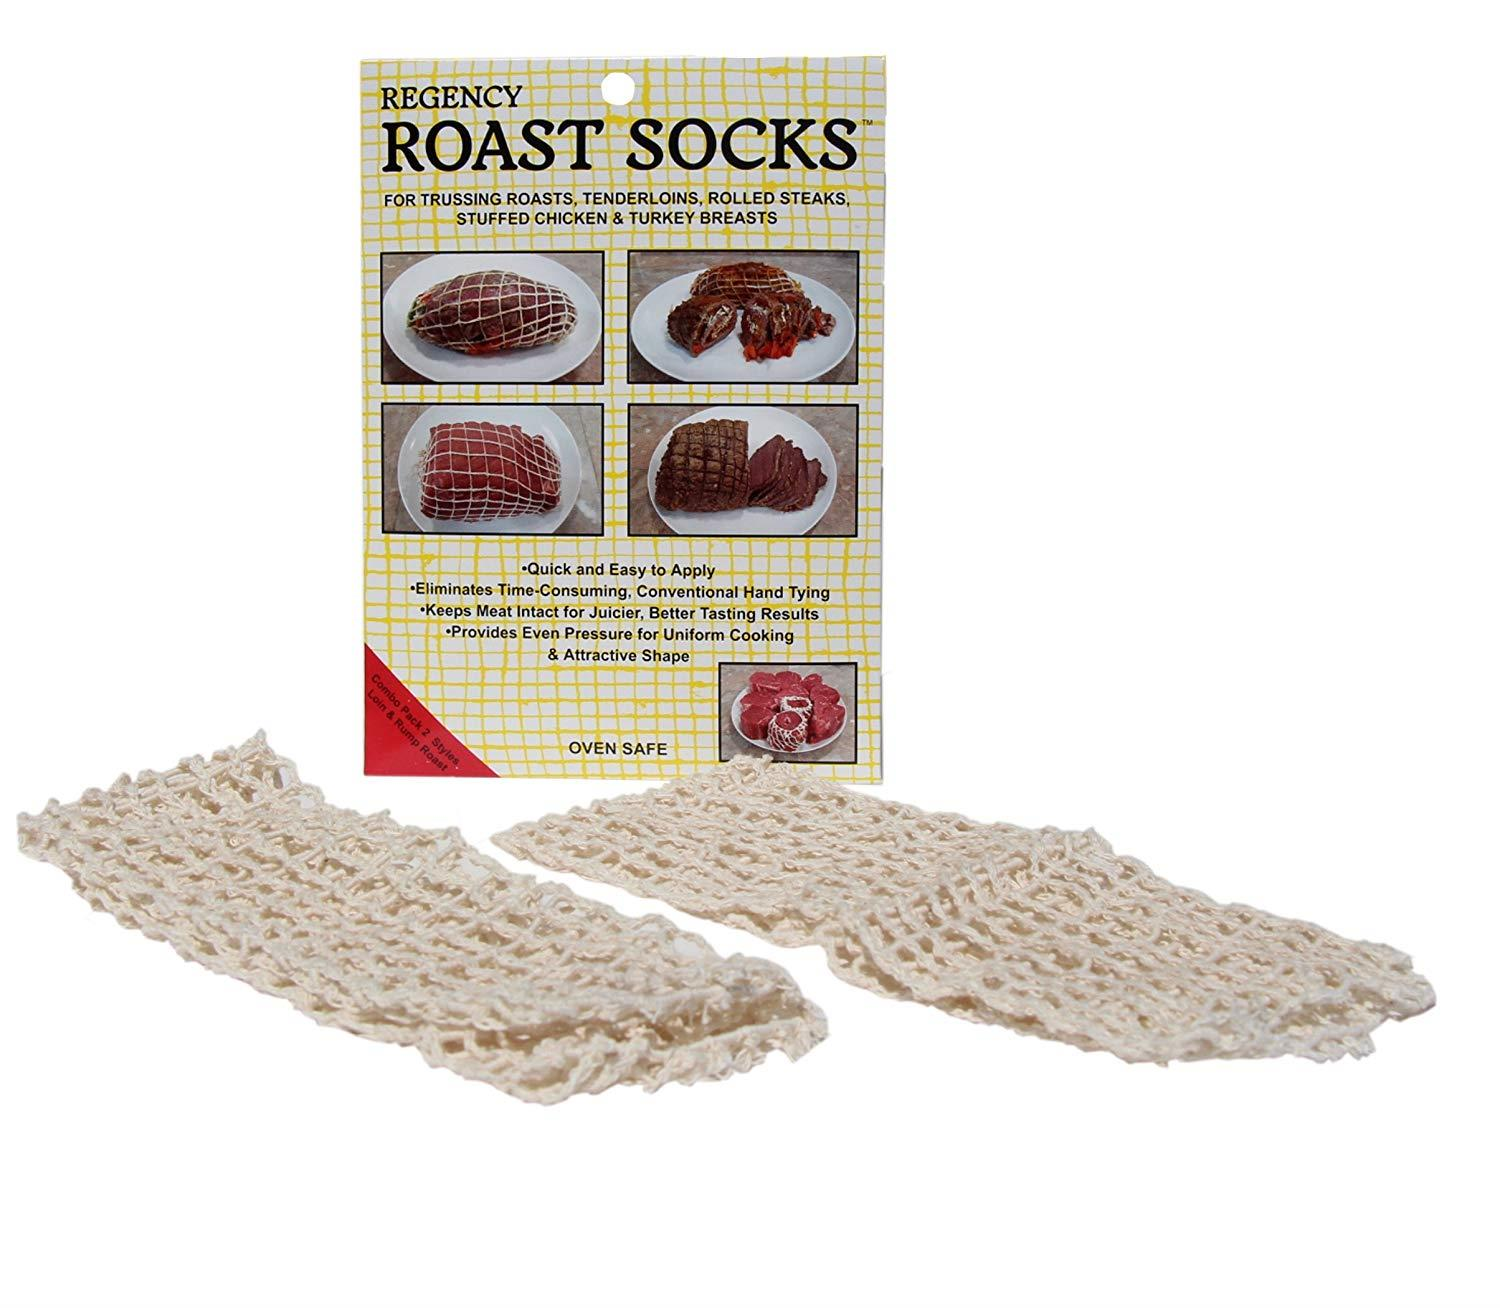 Regency Roast Socks